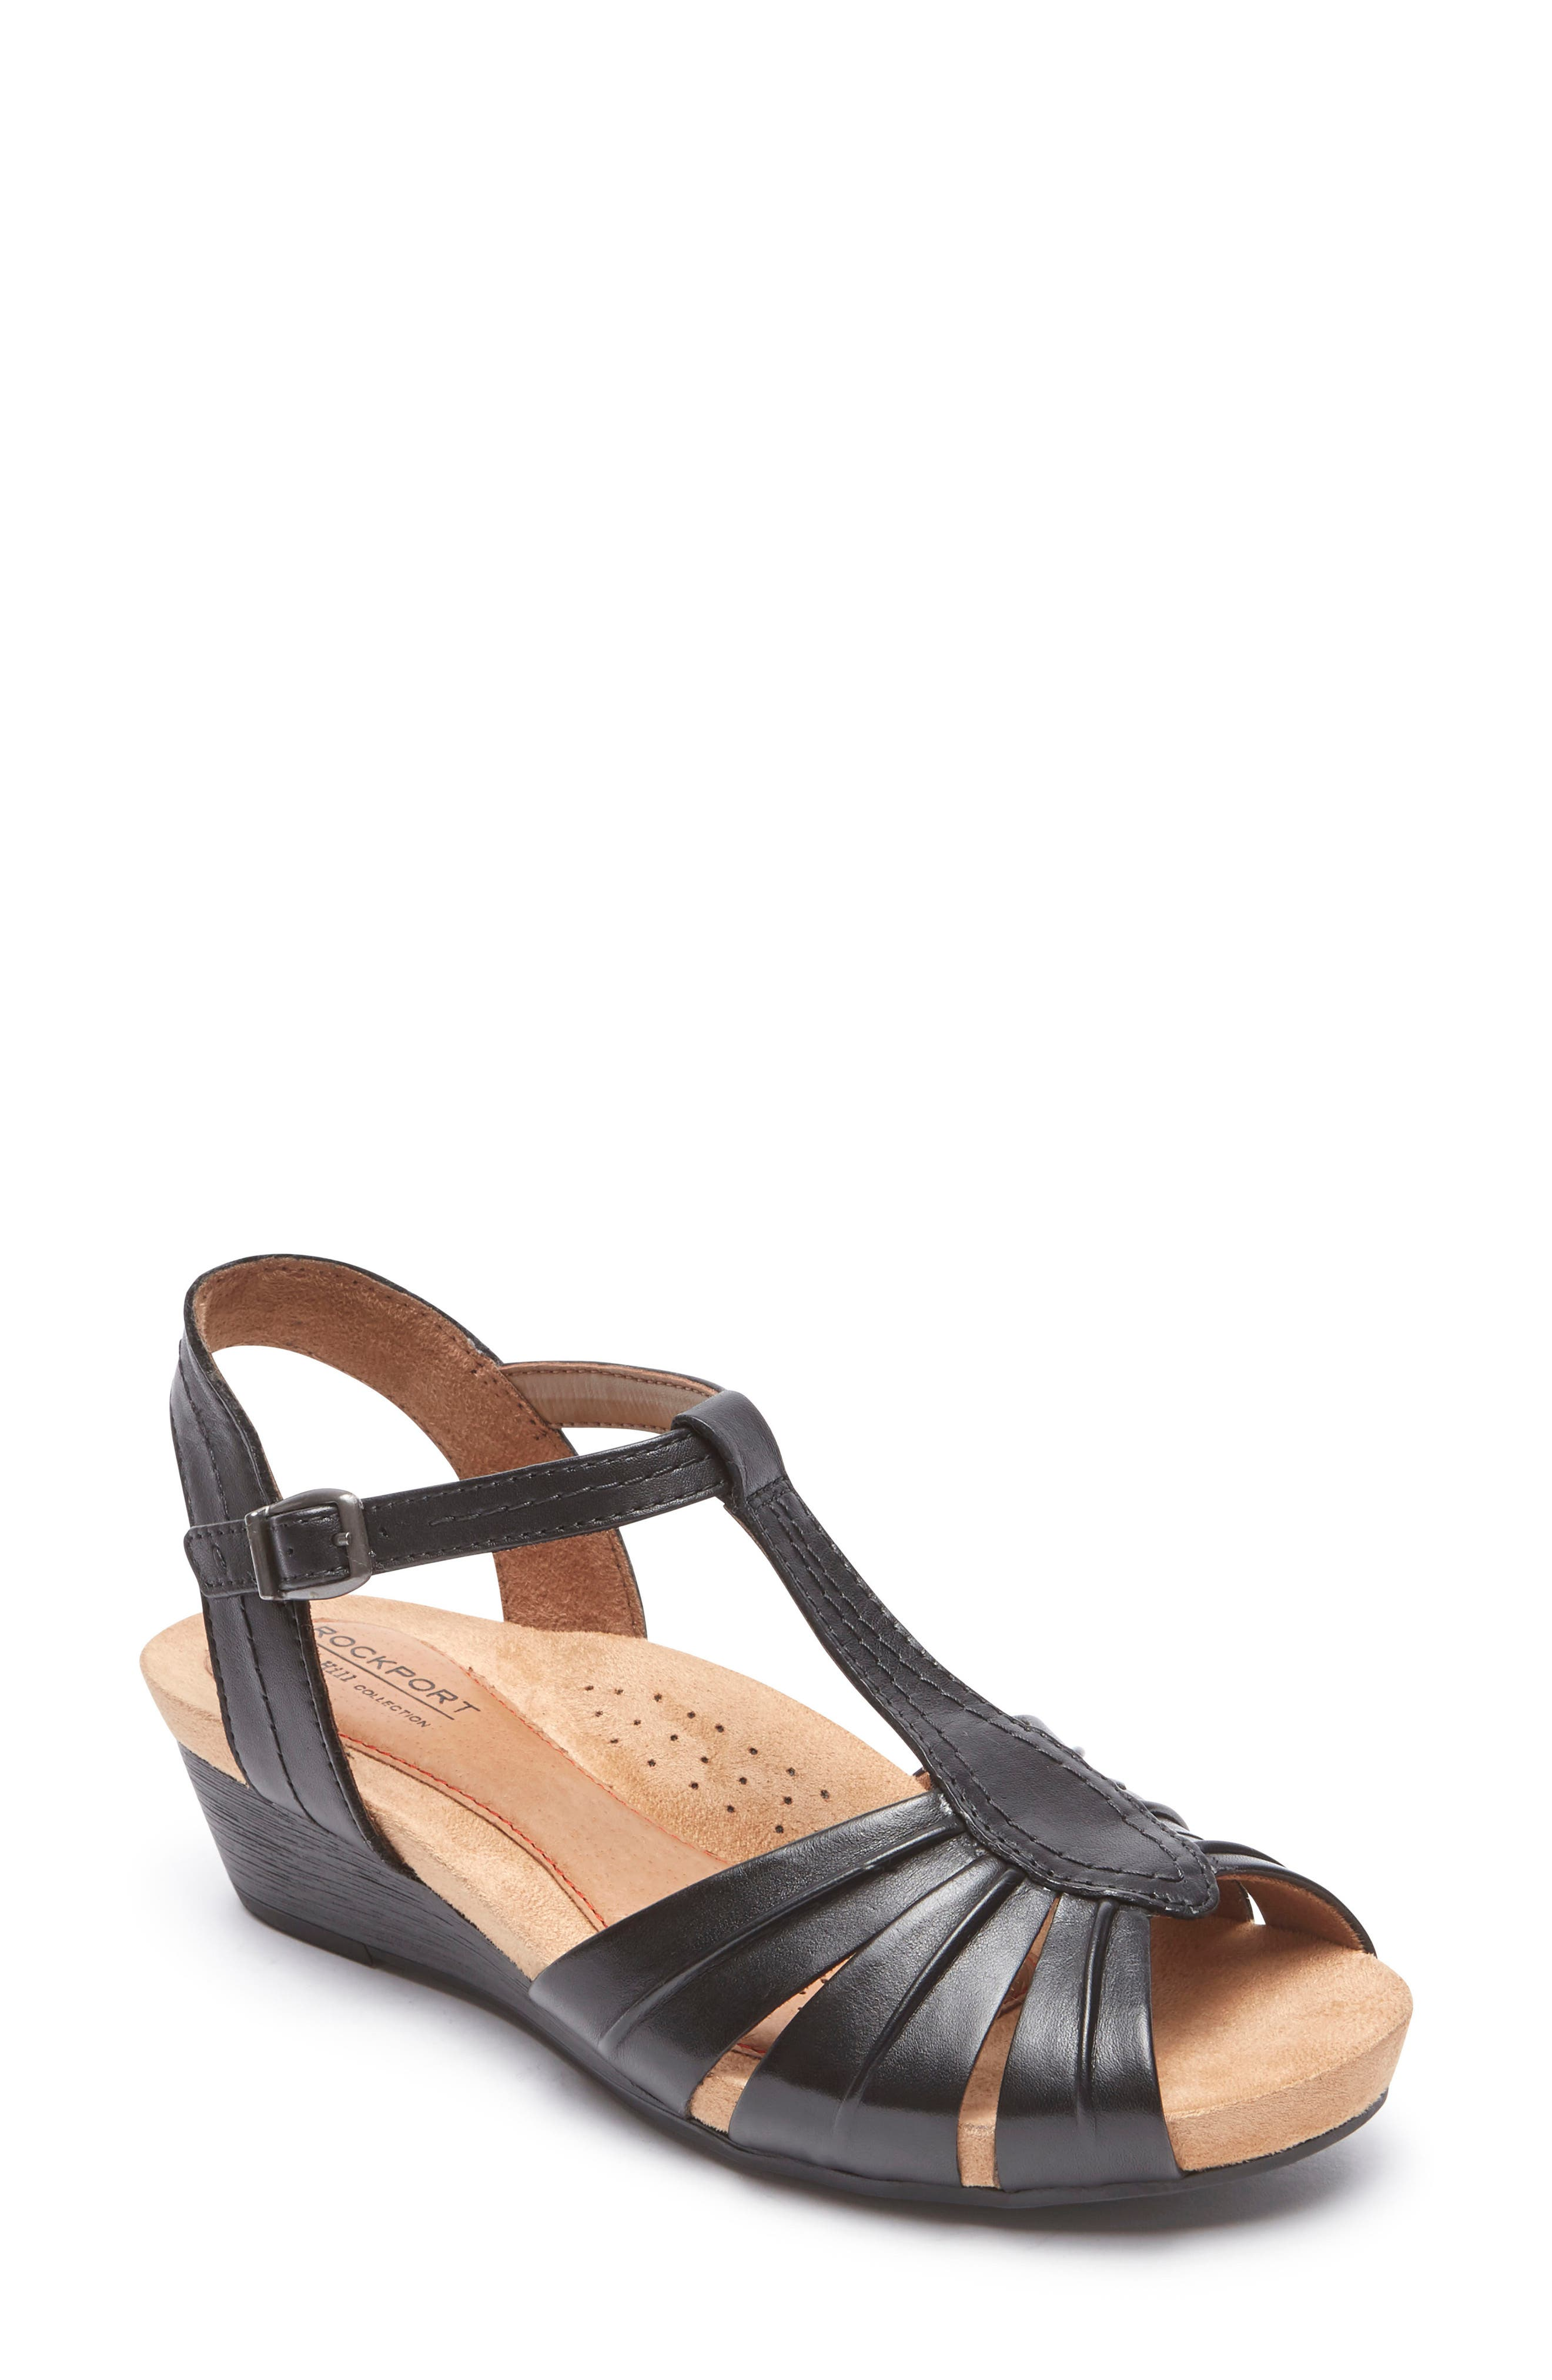 Hollywood Pleat Wedge Sandal,                         Main,                         color, 001